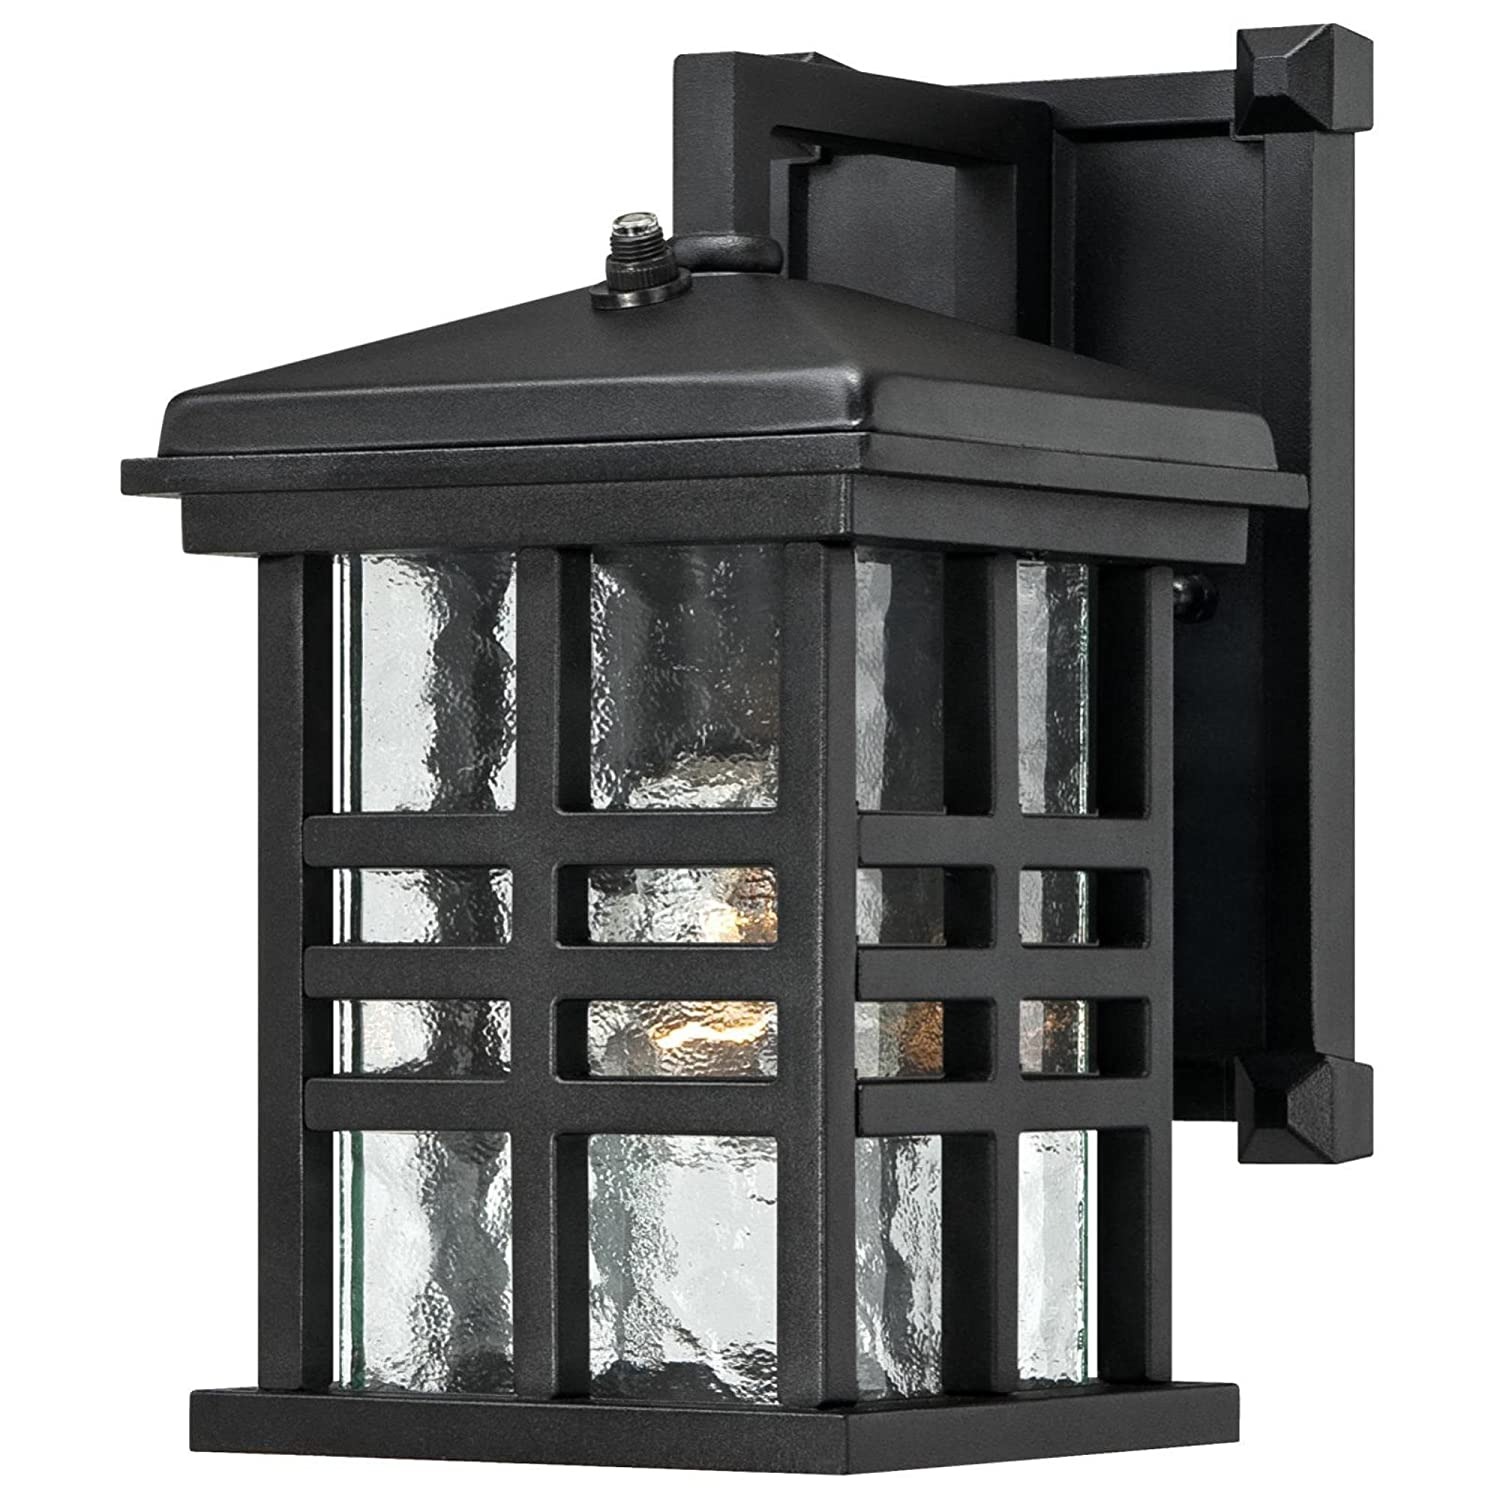 Westinghouse Lighting Westinghouse 6204500 Caliste 1 Light Outdoor Wall Lantern with Dusk to Dawn Sensor, Textured Black